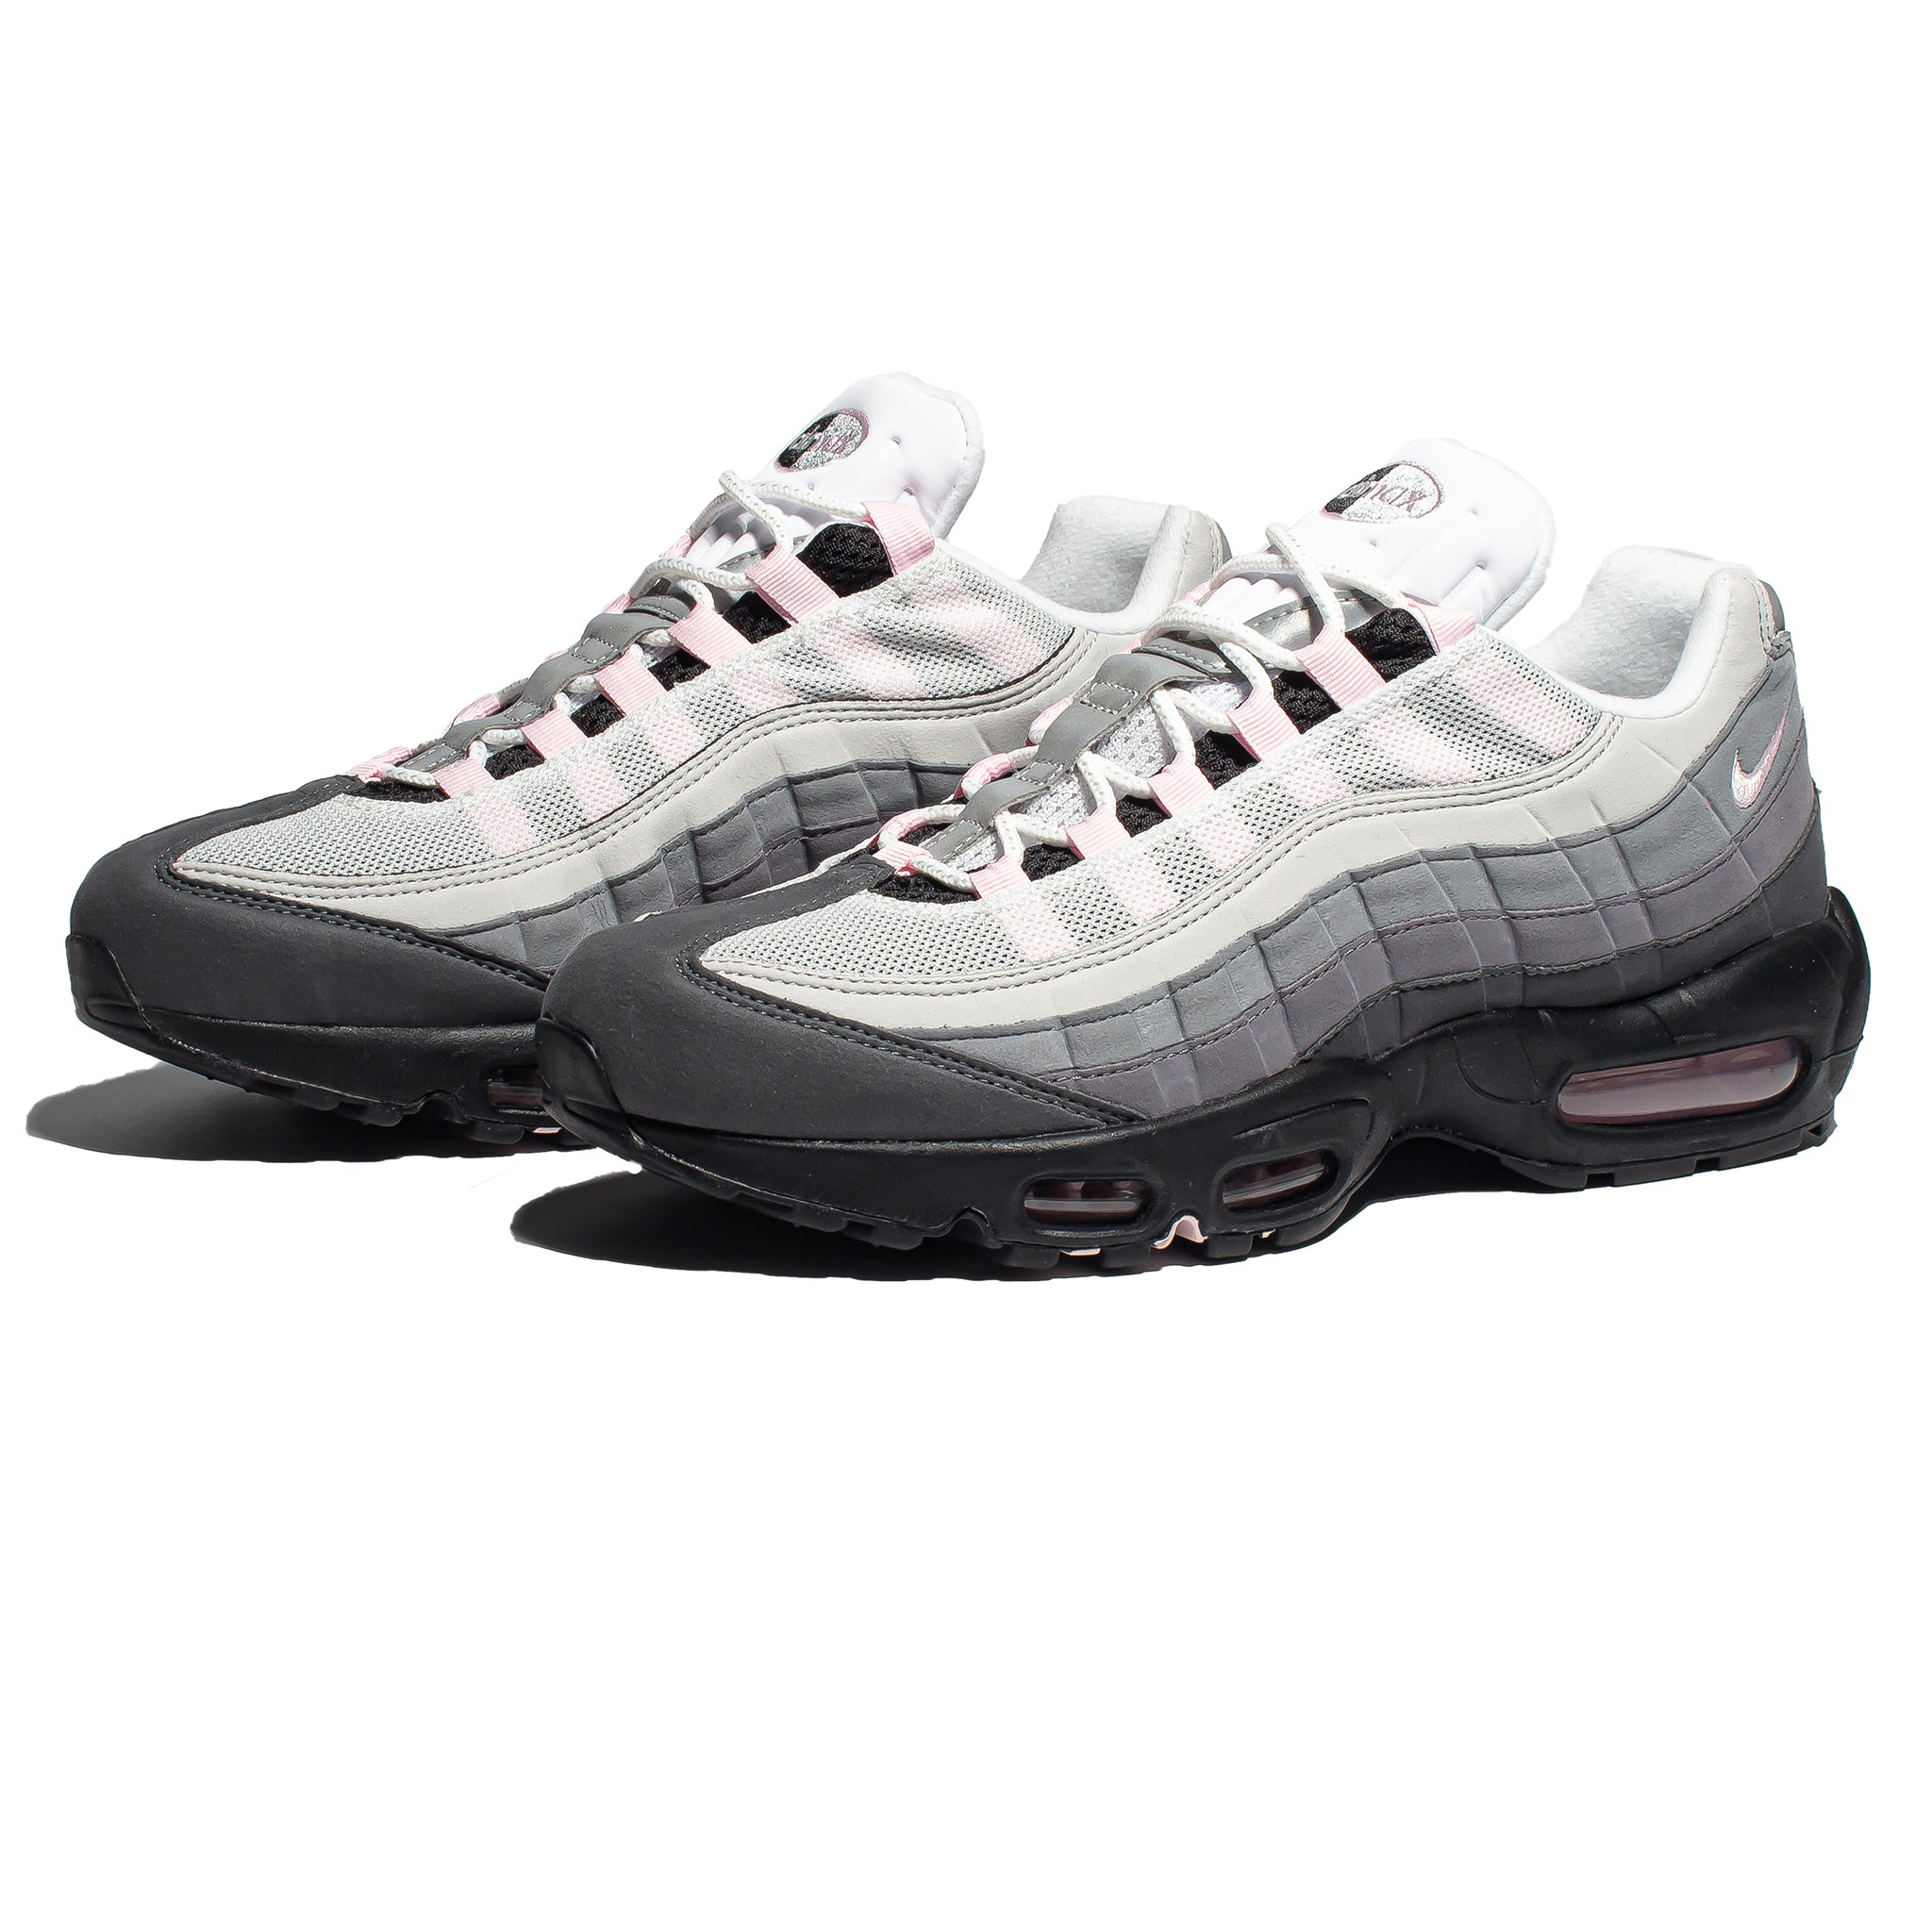 Nike Air Max 95 PRM 'Pink Foam'